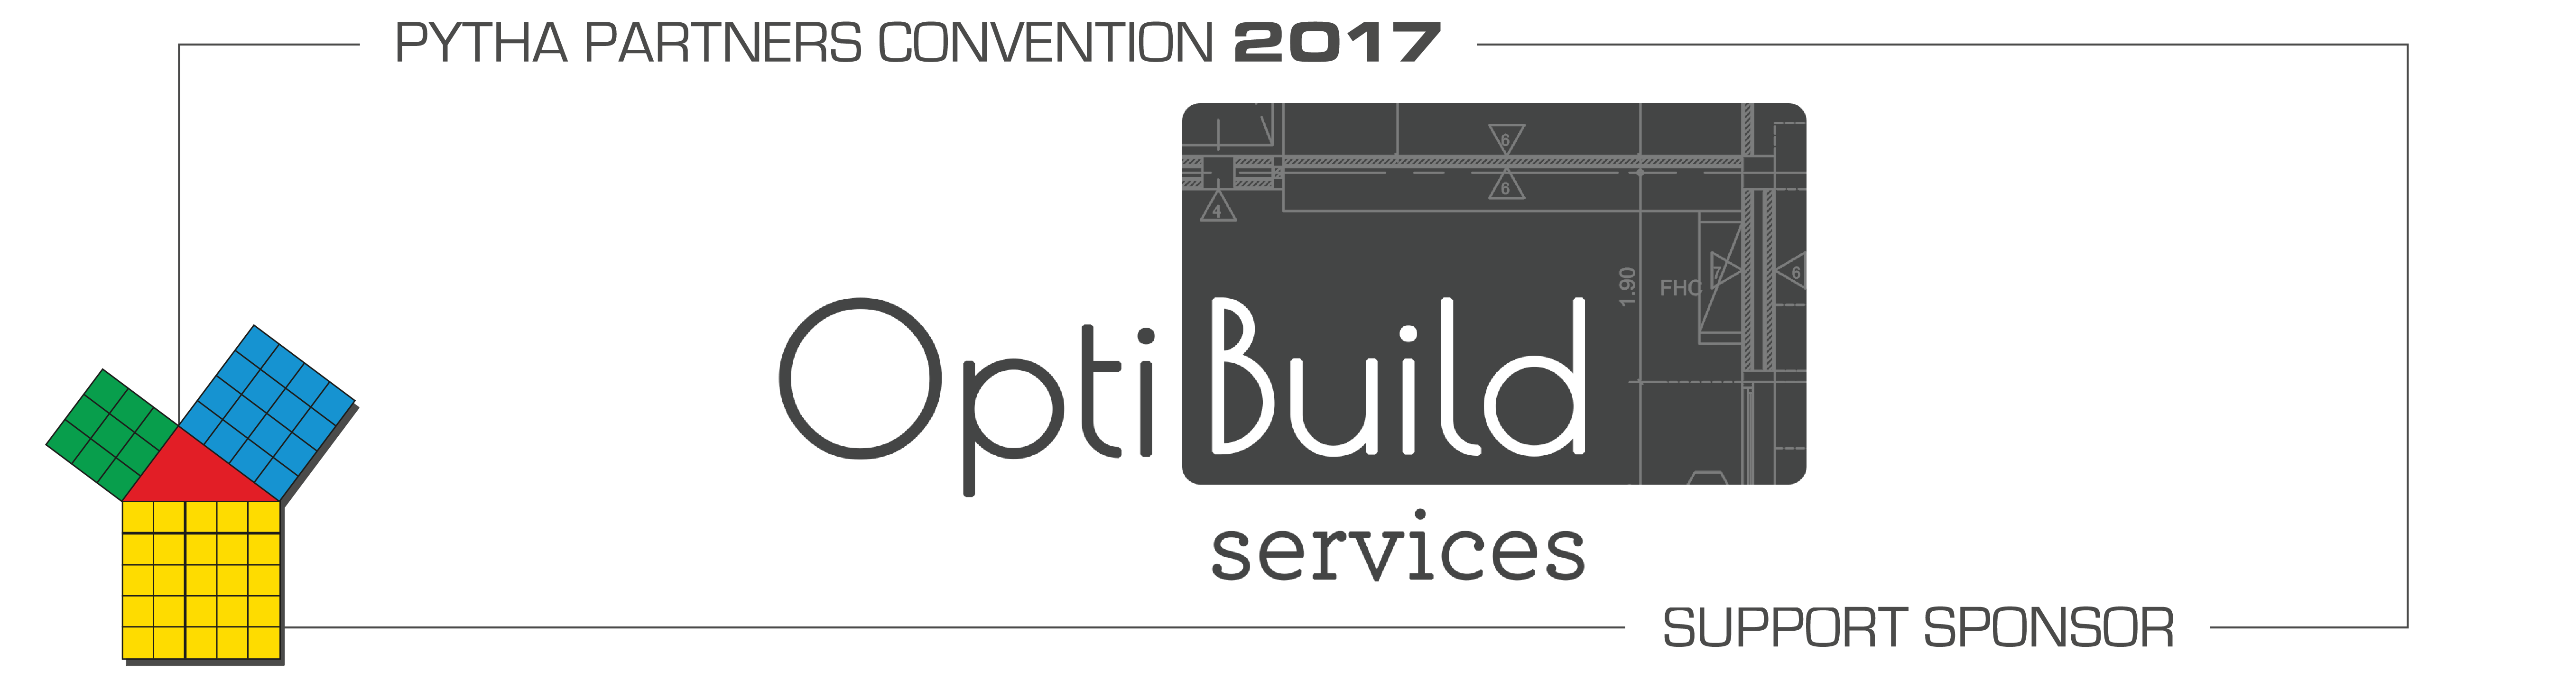 Pytha_Support Sponsor_OptiBuild_Logo-01